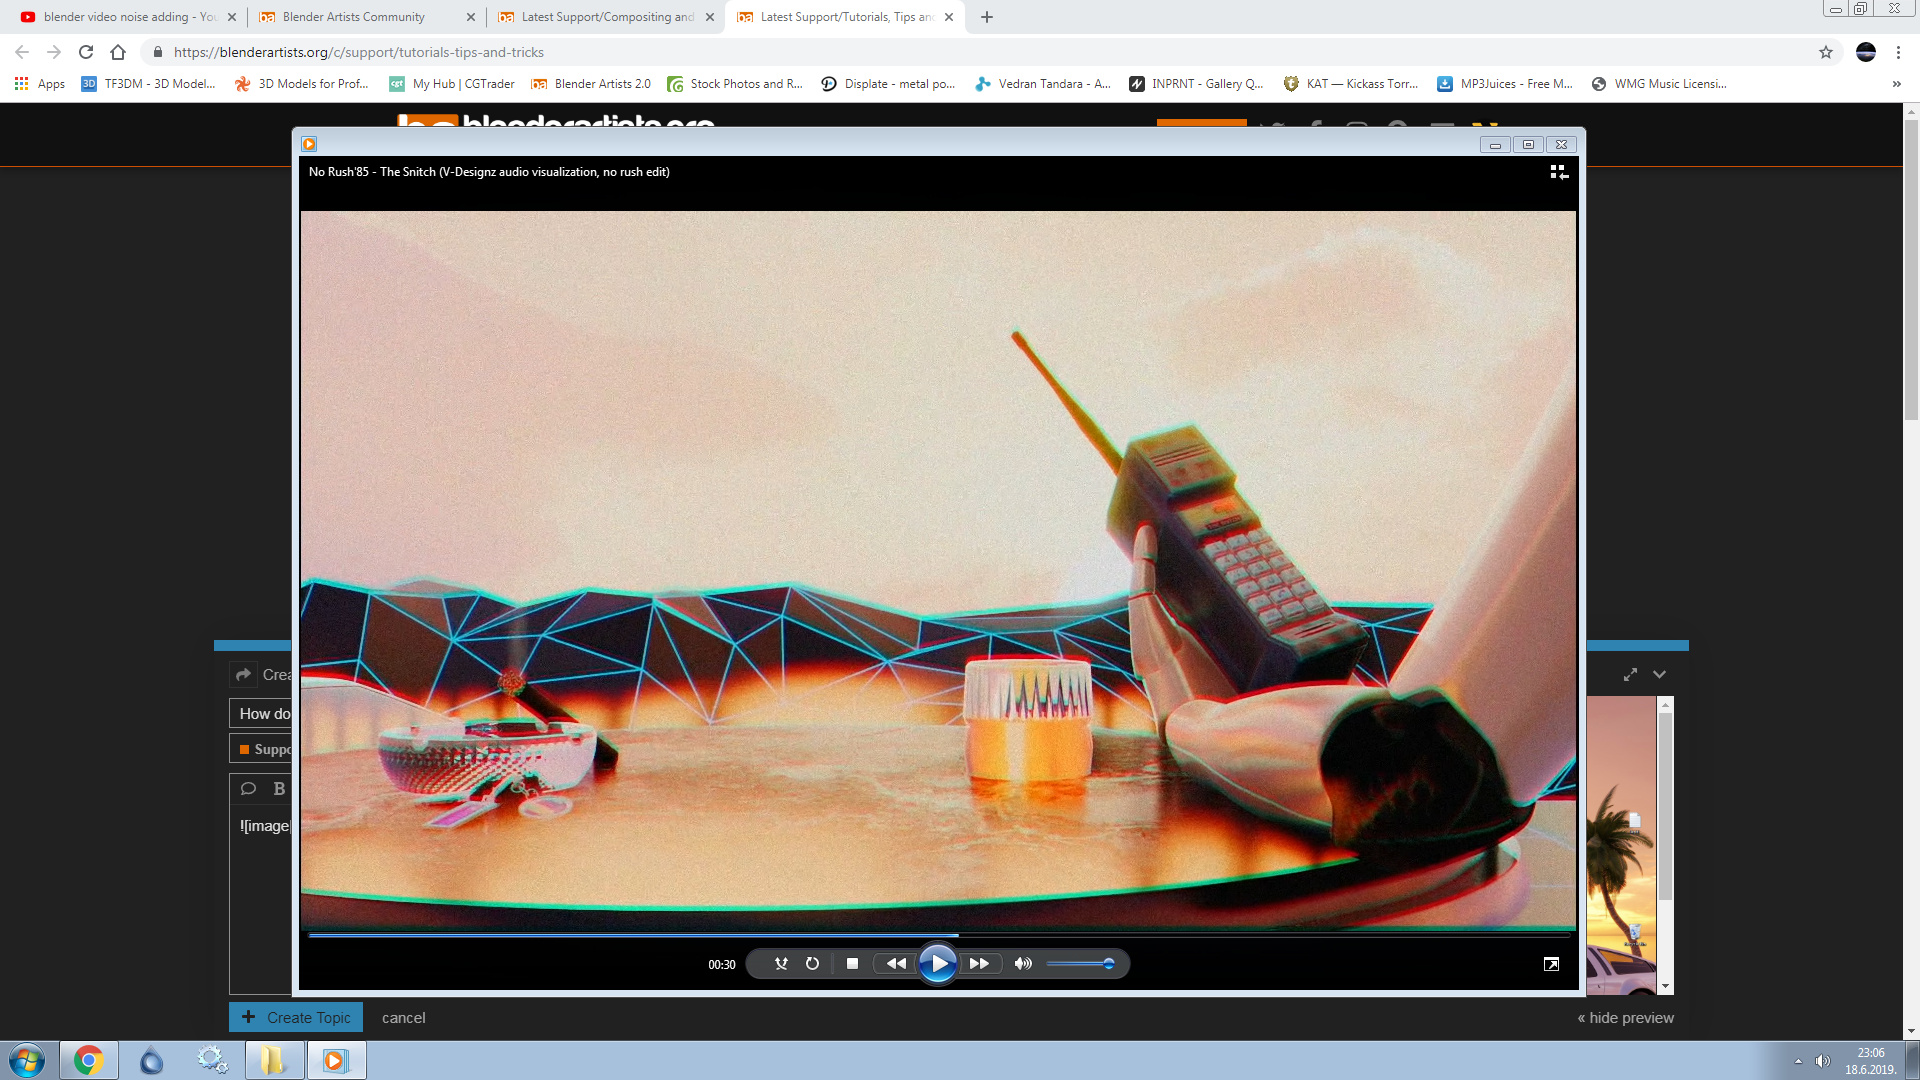 How do I add that synthwave retro noise in video editing